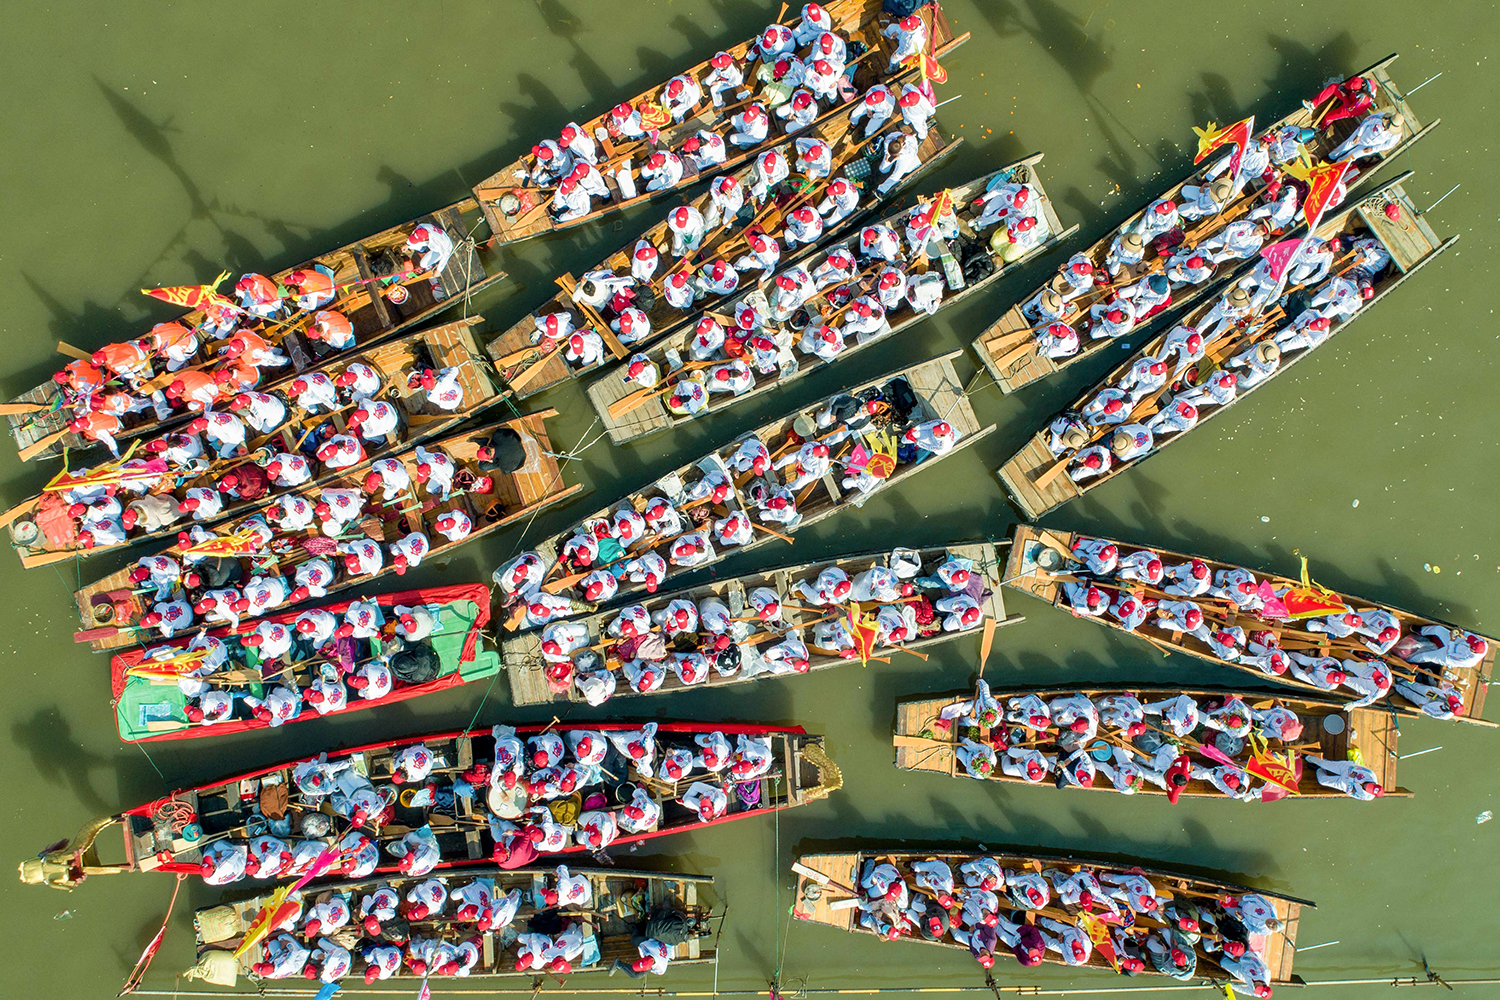 Boats prepare to take part in a performance during the Qintong Boat Festival in Taizhou, China, on April 8. STR/AFP via Getty Images